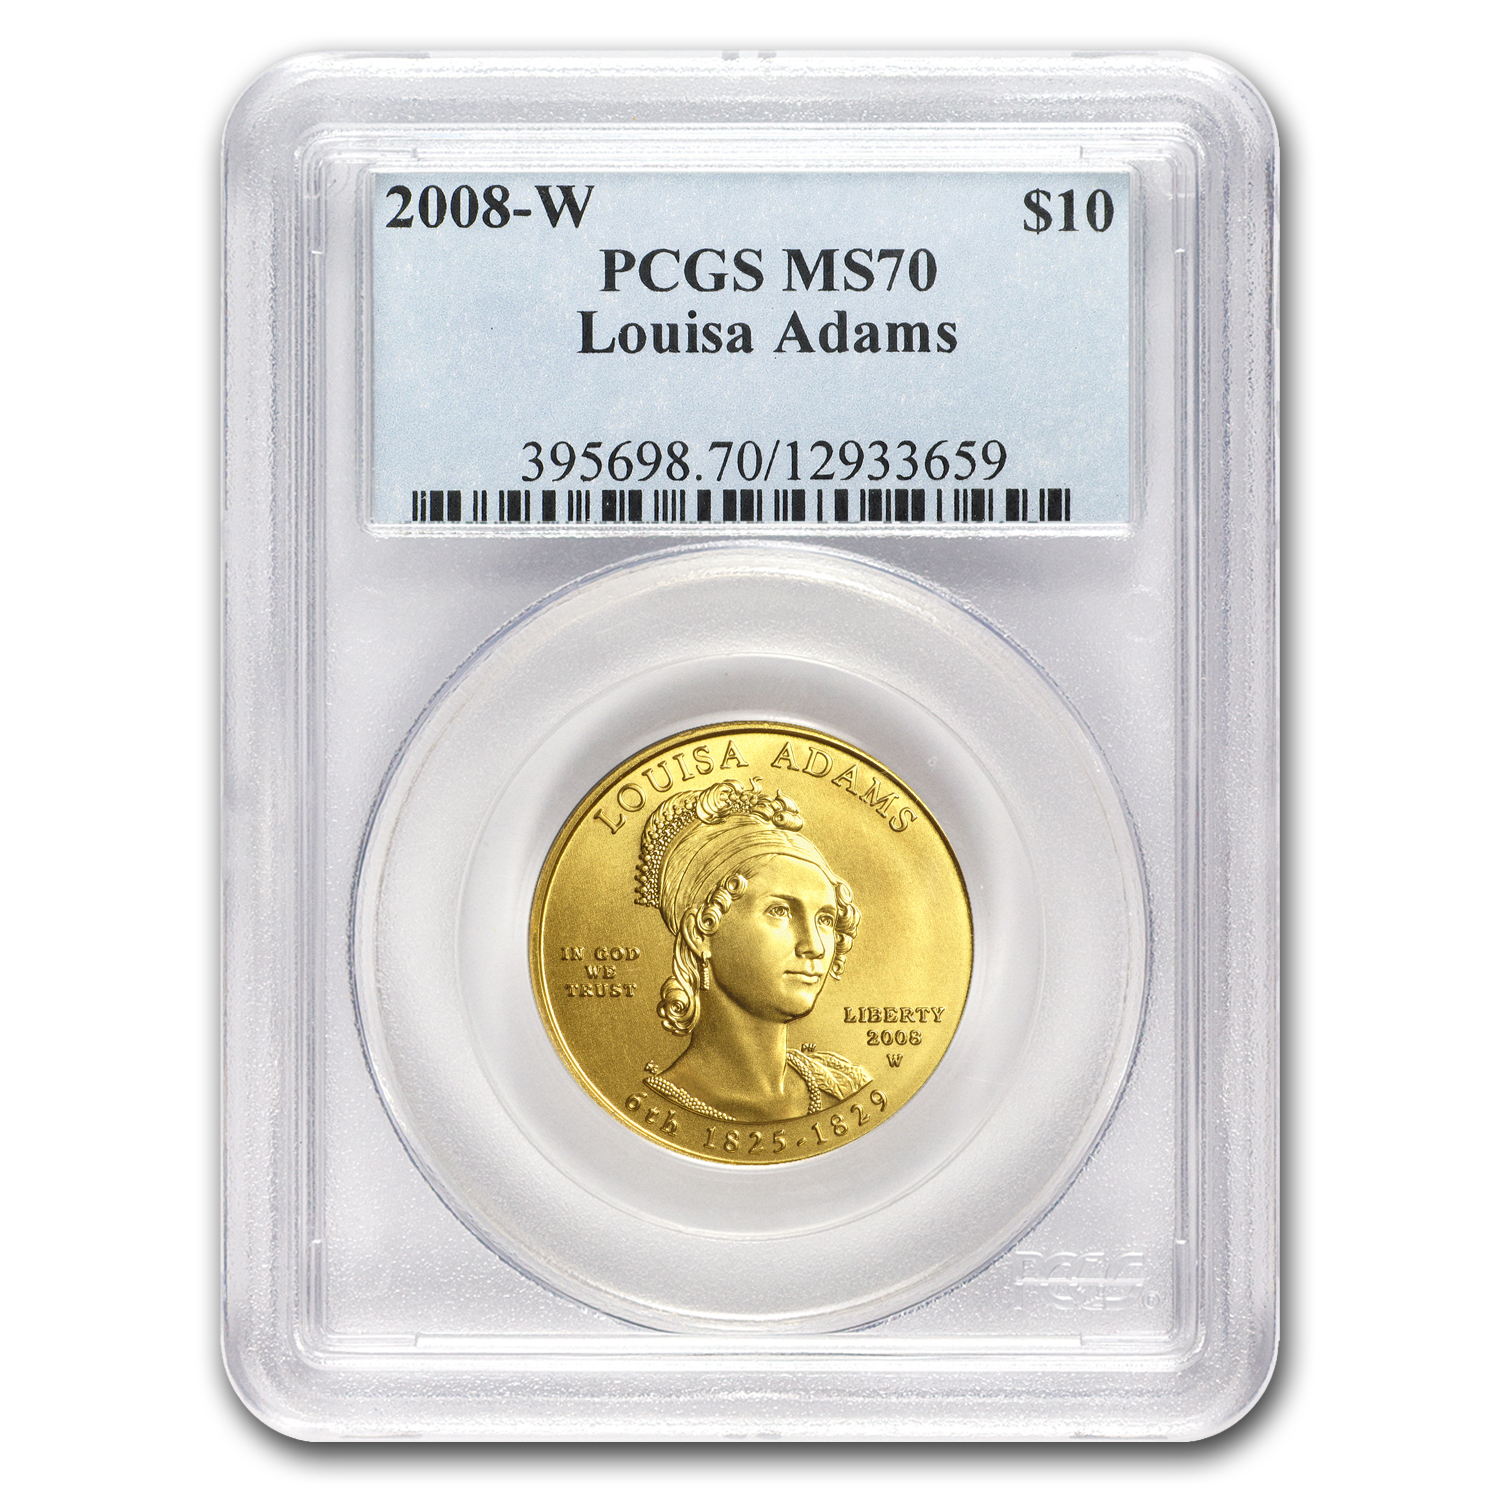 2008-W 1/2 oz Gold Louisa Adams MS-70 PCGS